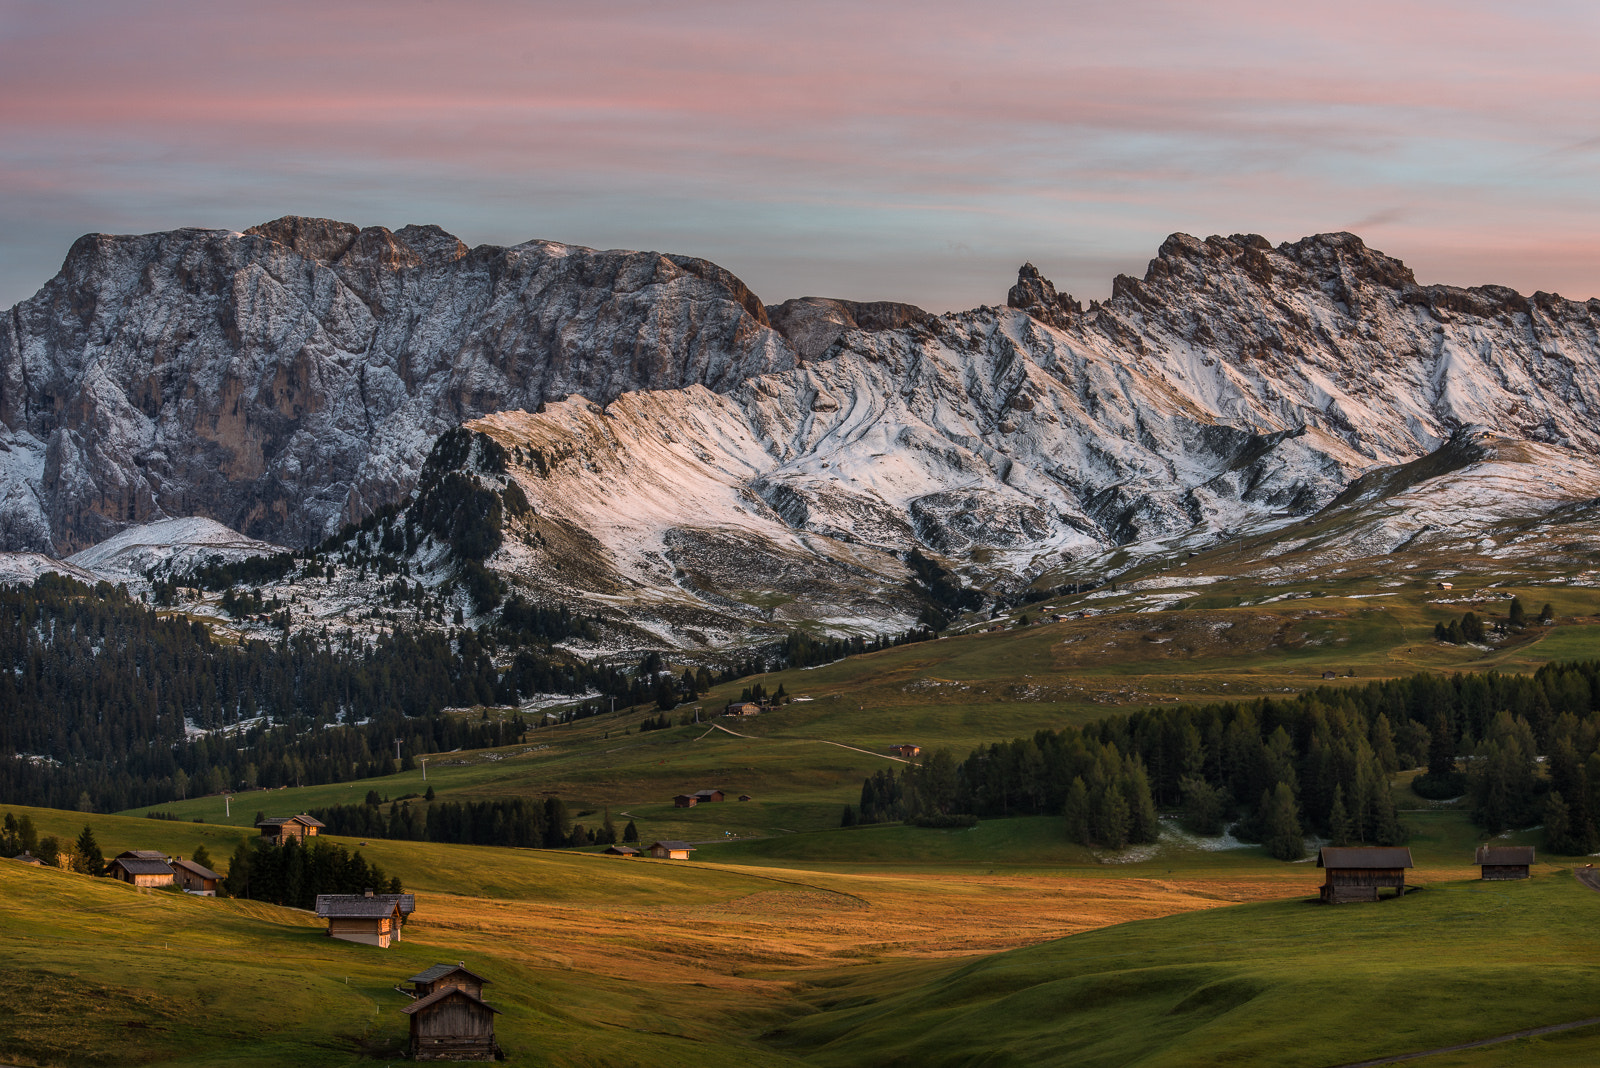 Photograph Sunset at Alpe di Siusi by Hans Kruse on 500px